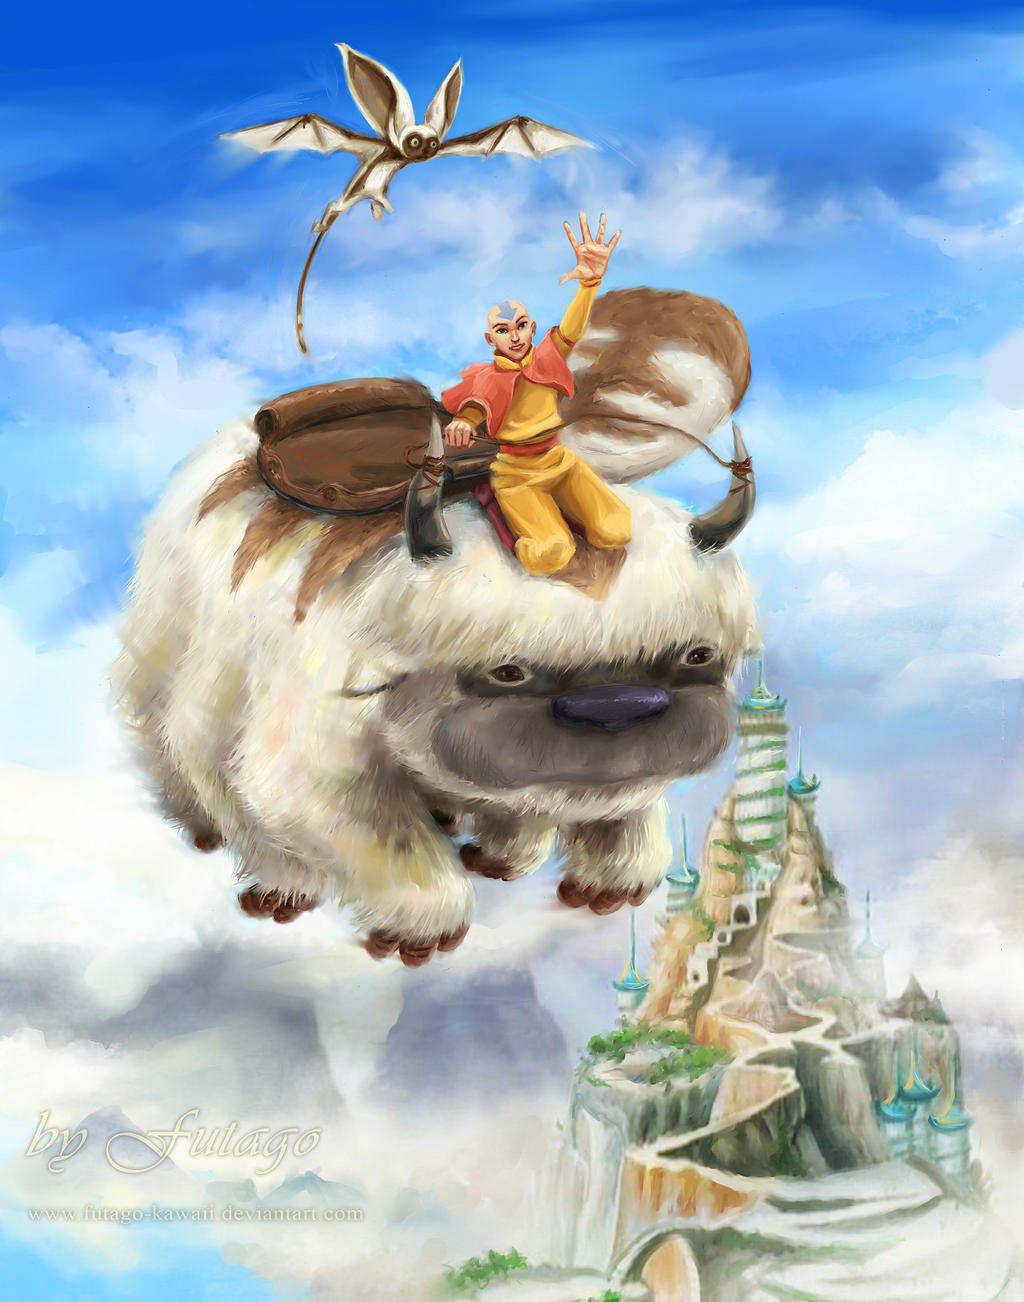 Avatar the last airbender 2010 free download